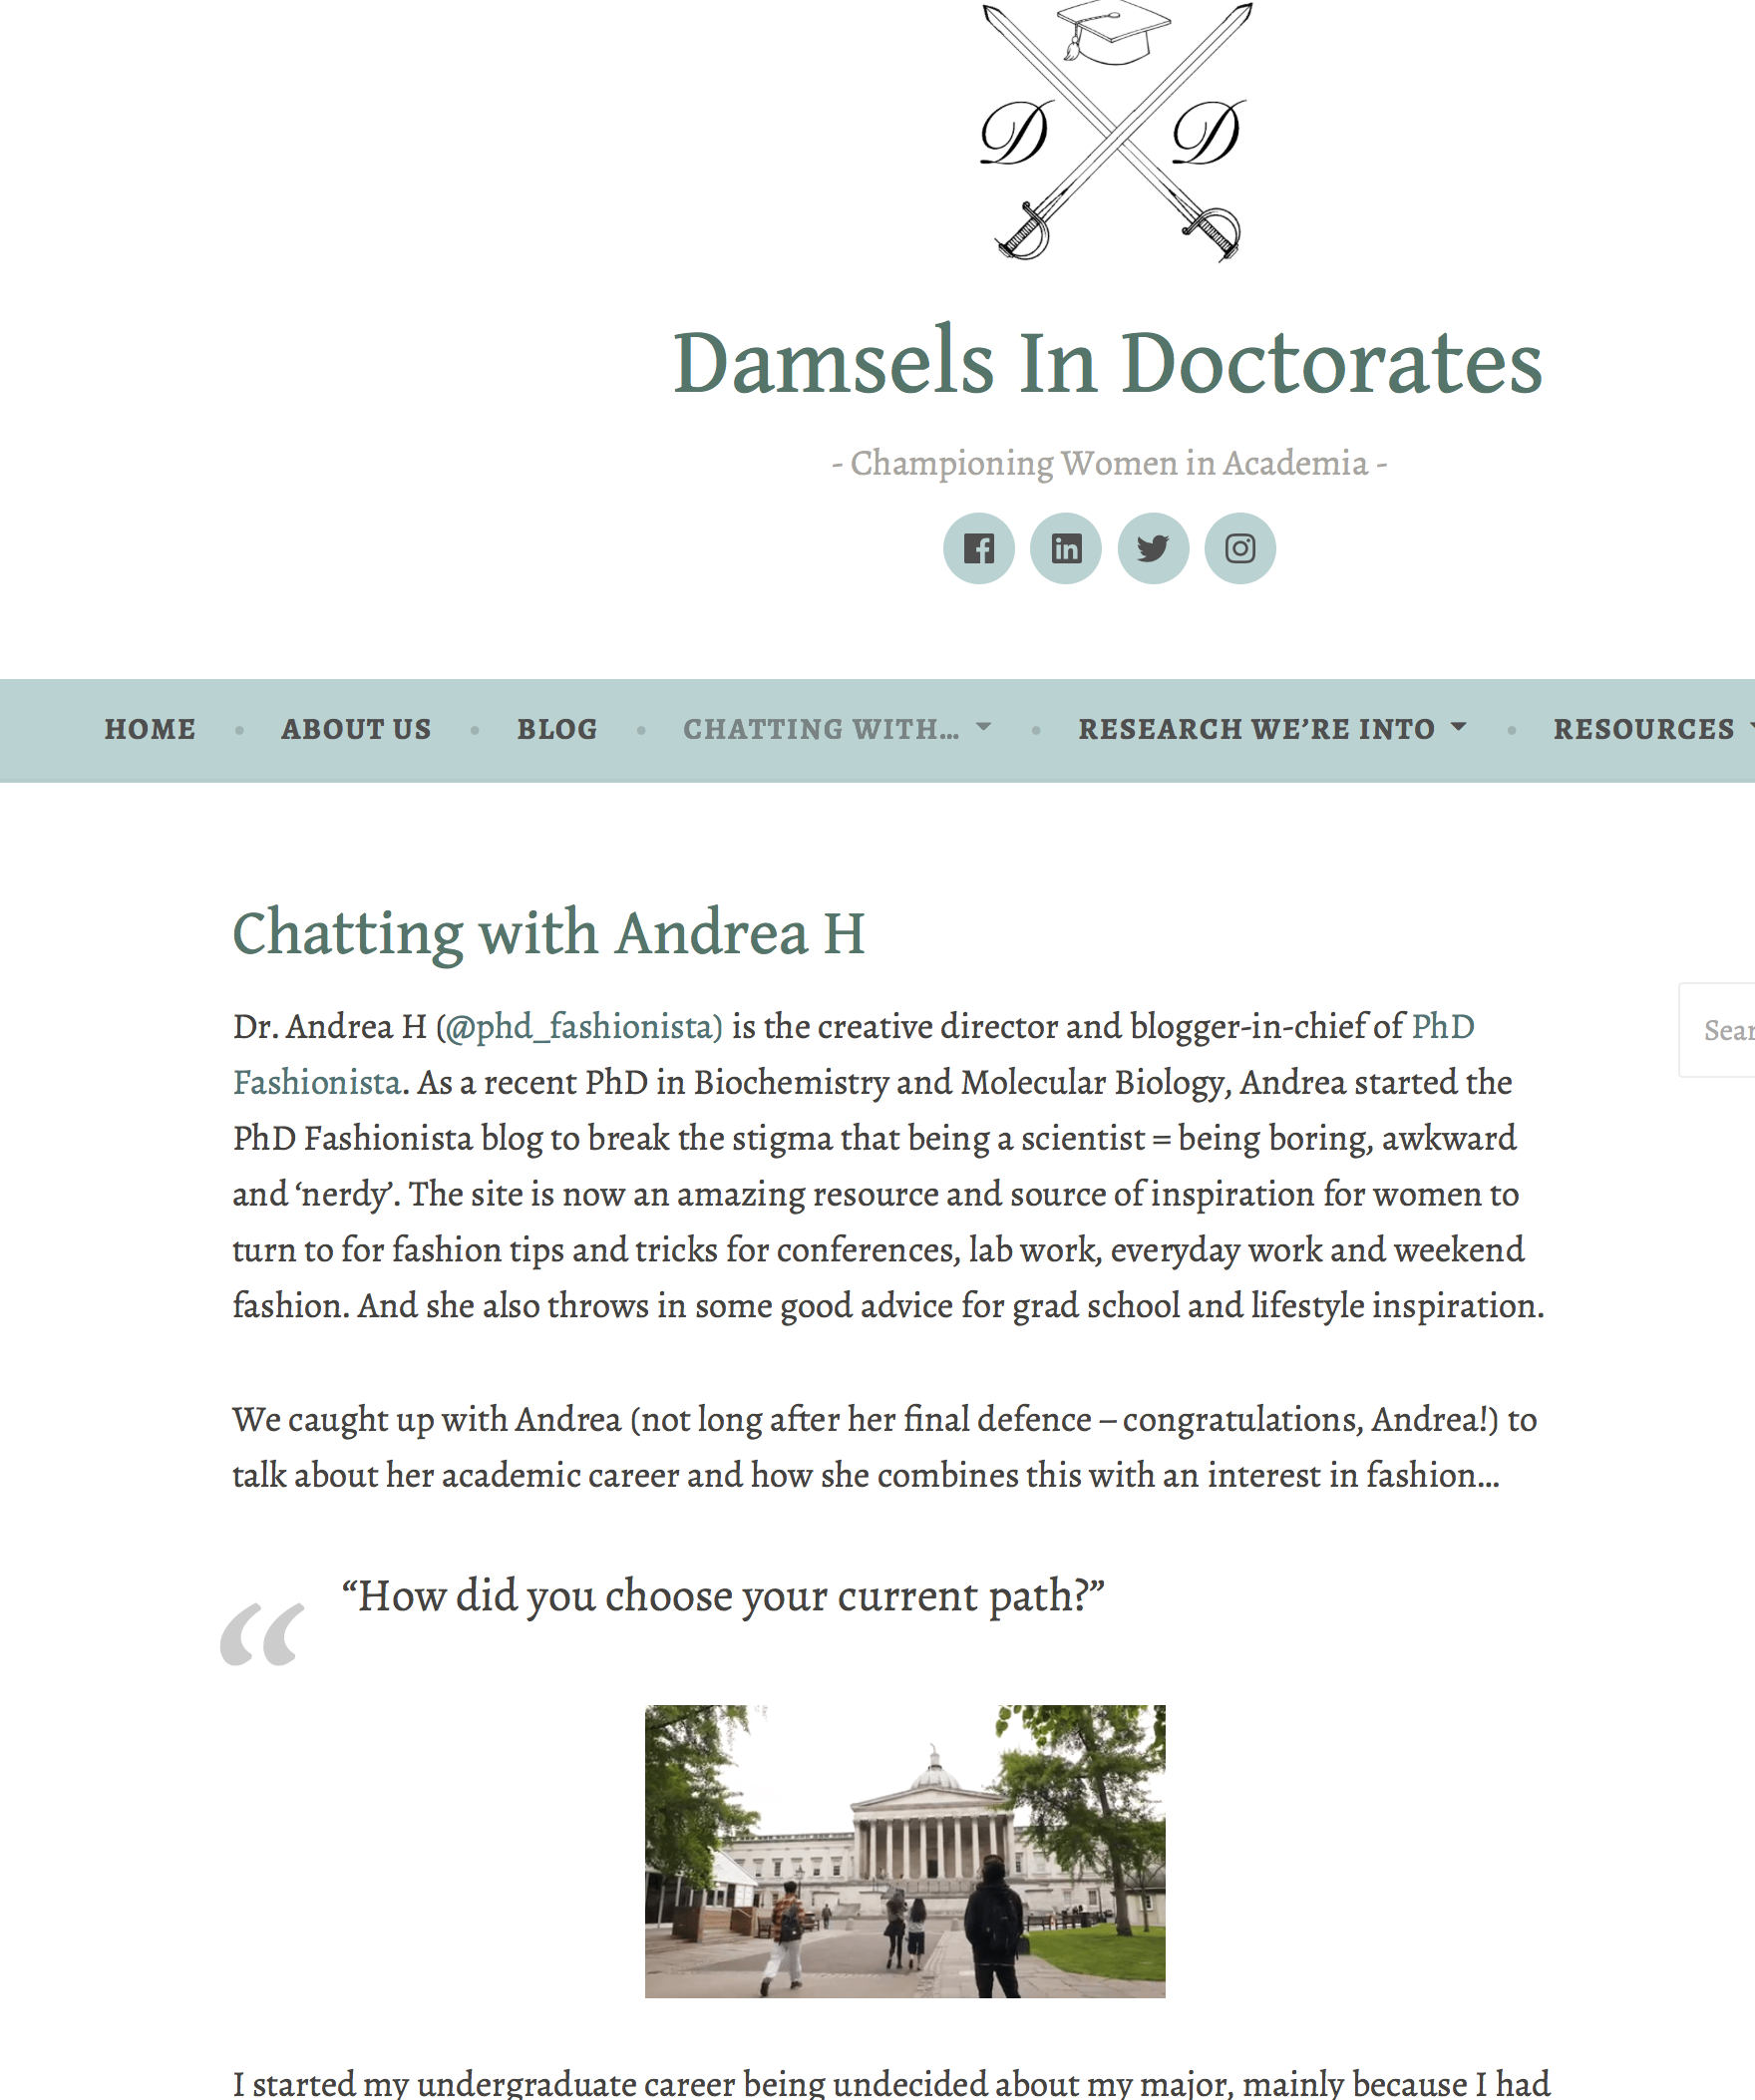 PhD Fashionista feature in Damsels in Doctorates